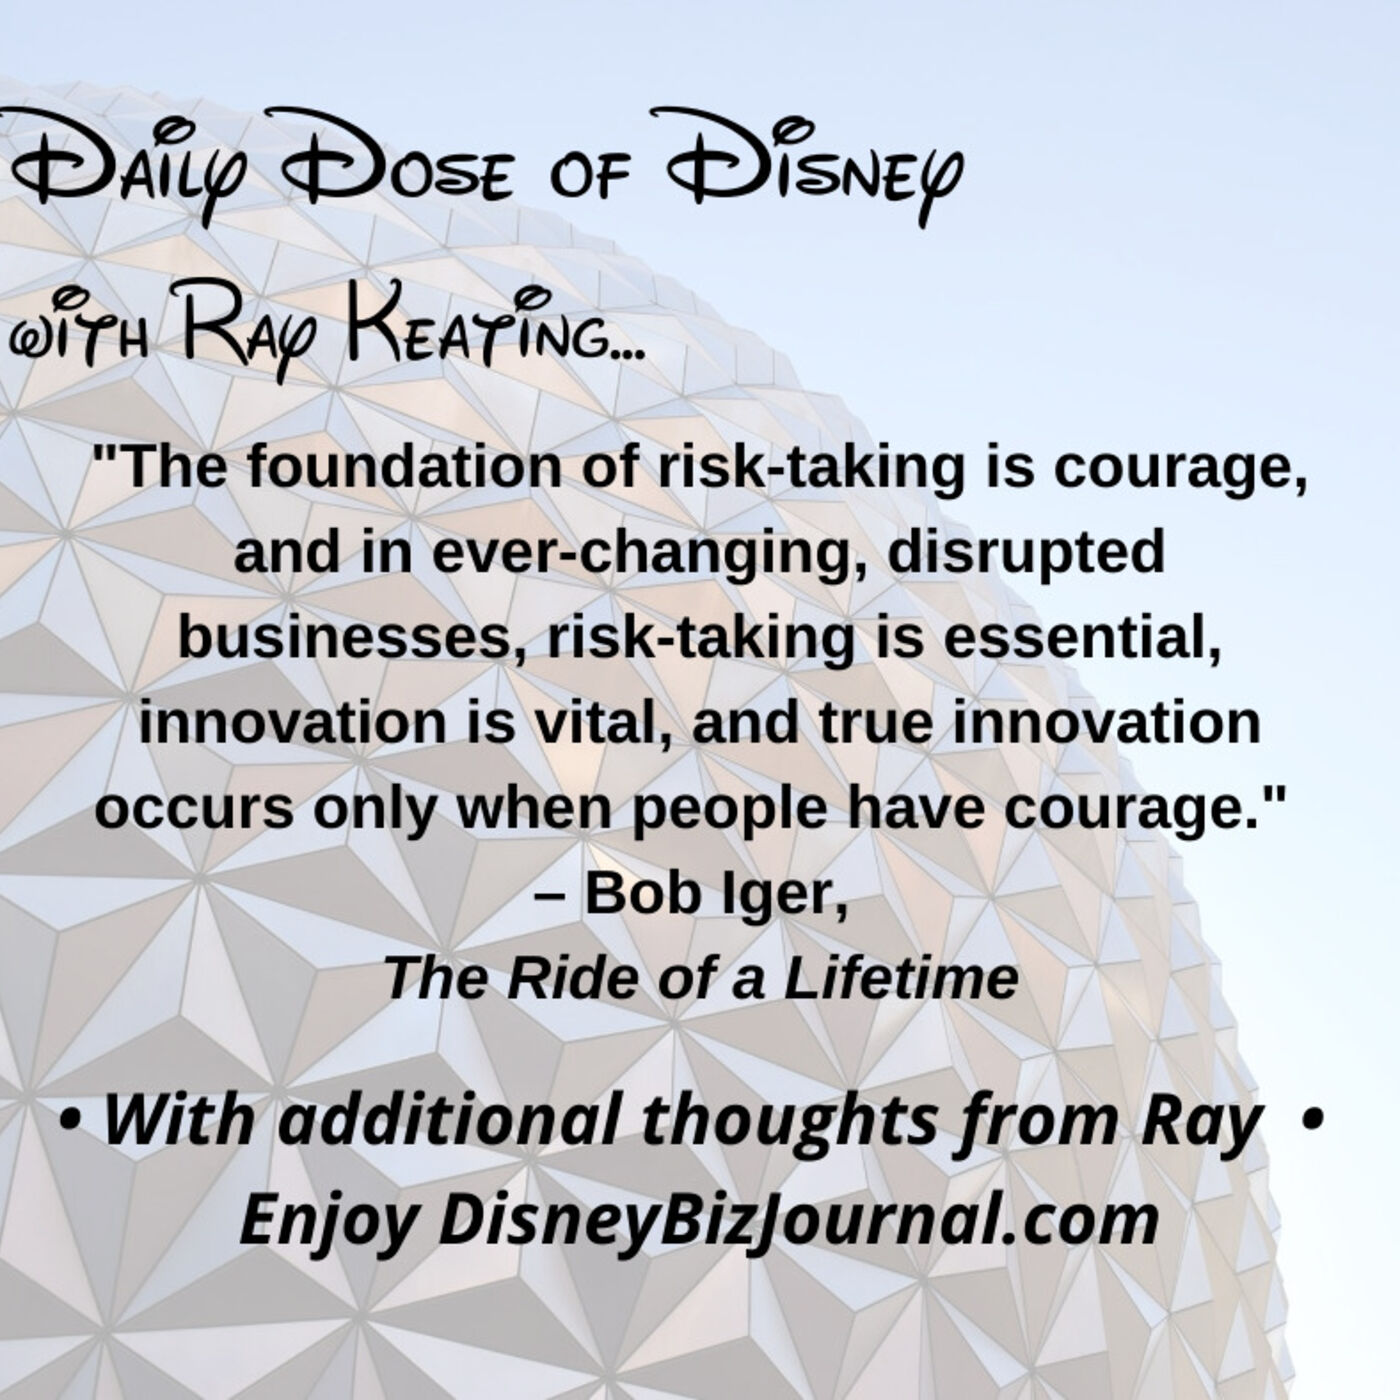 Episode #58: Iger on Courage and Risk Taking